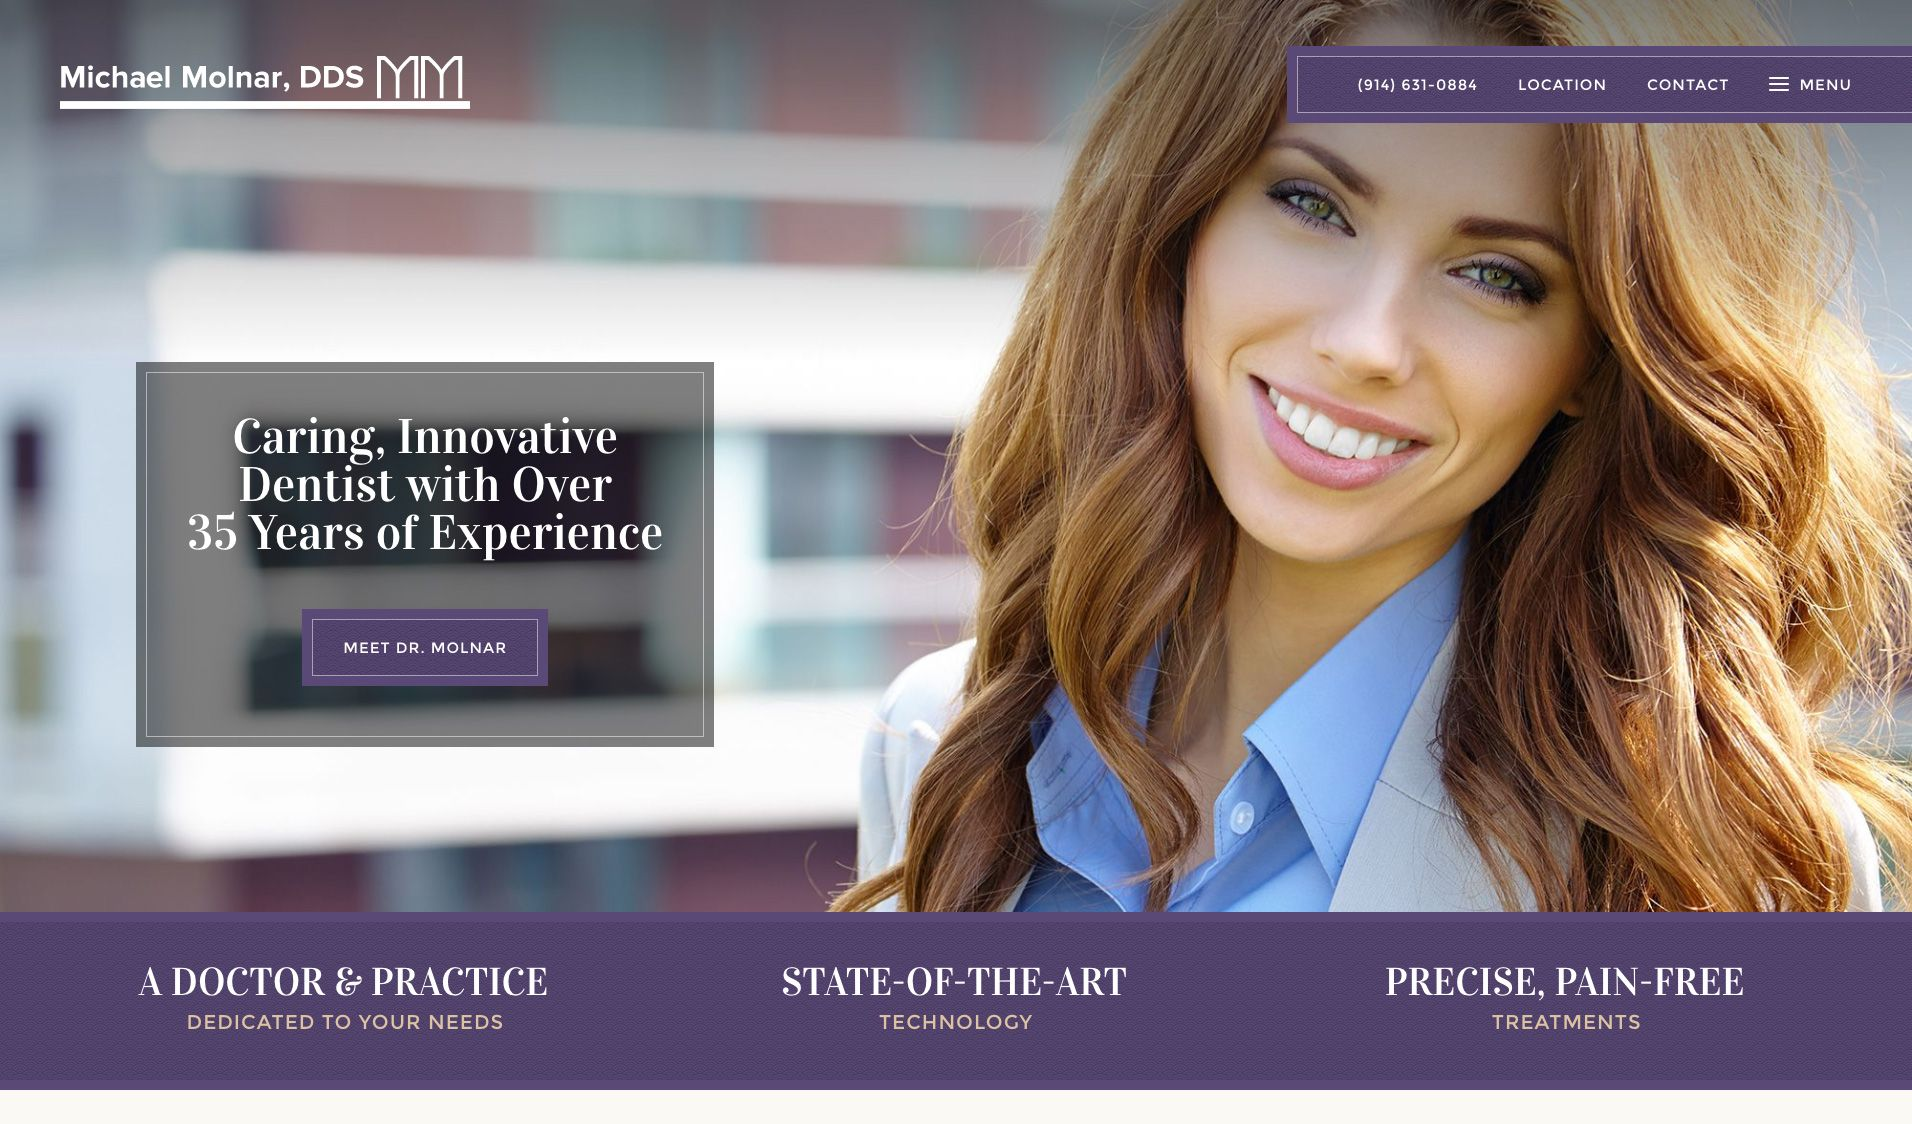 The website of Michael Molnar, DDS